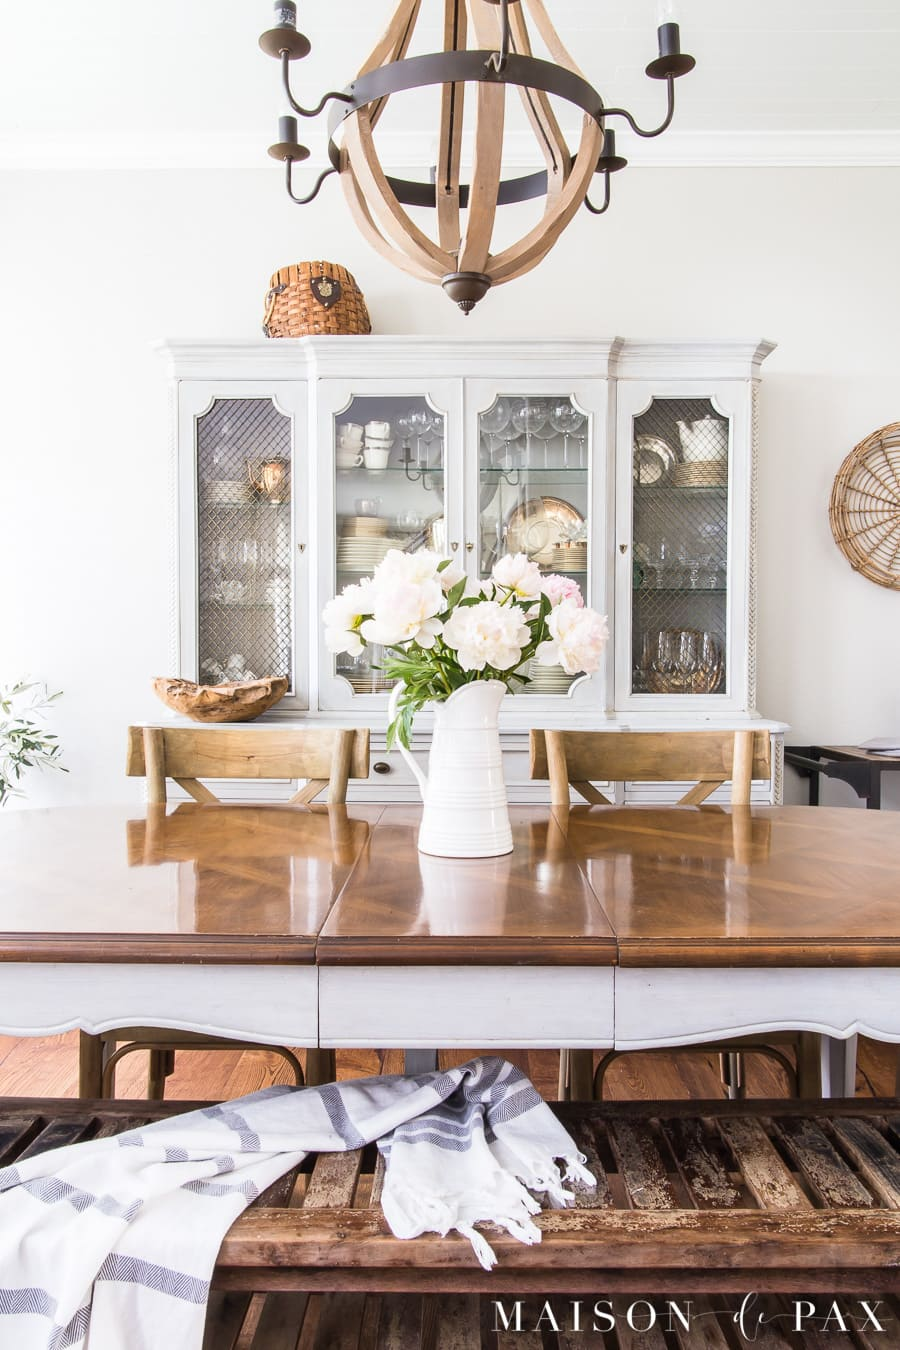 Find out how to achieve a simple French Country dining room look. #frenchcountry #neutrals #diningroom #decorating #frenchfarmhouse #frenchdecor #diningroomdecor